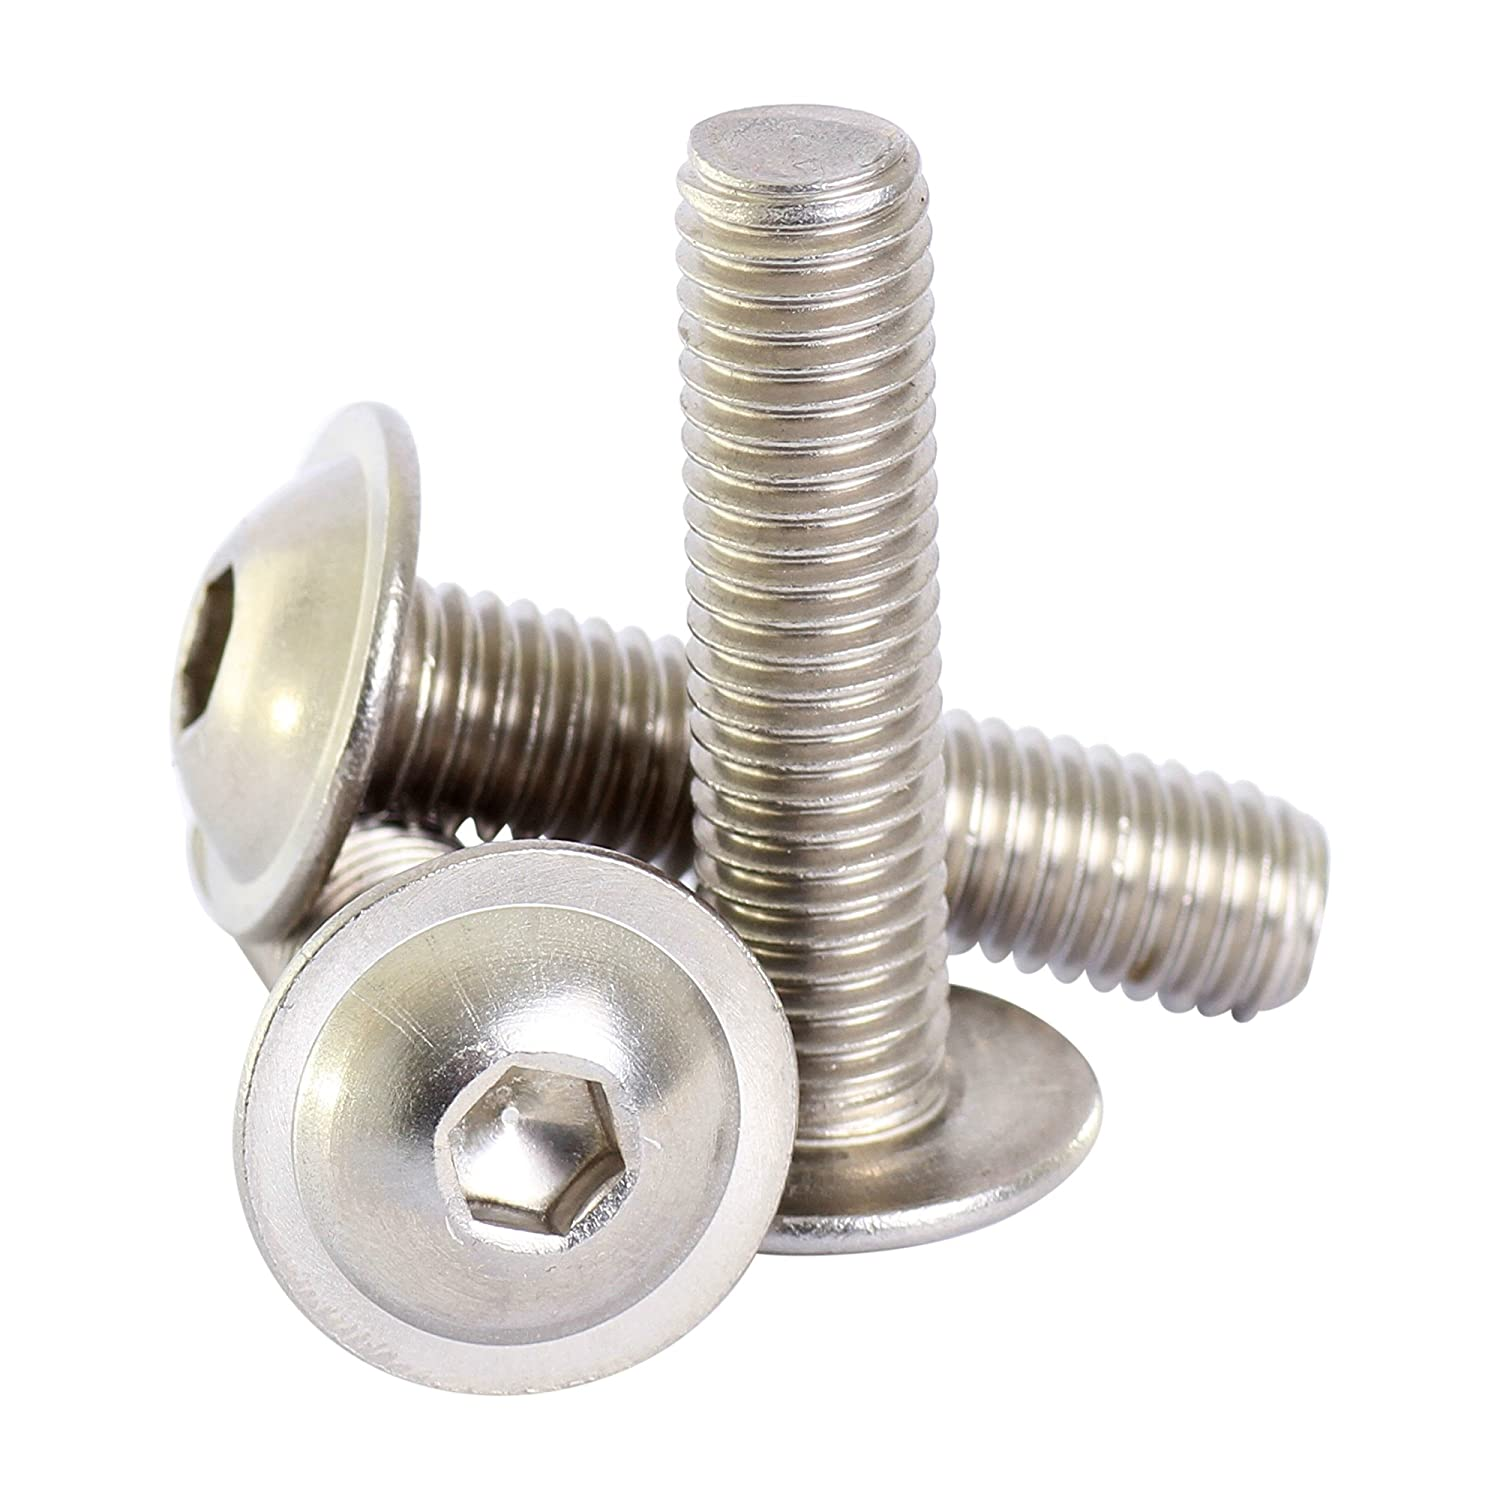 Bolt Base 6mm A2 Stainless Steel Flanged Button Head Allen Bolt Hex Socket Screw M6 X 50-100